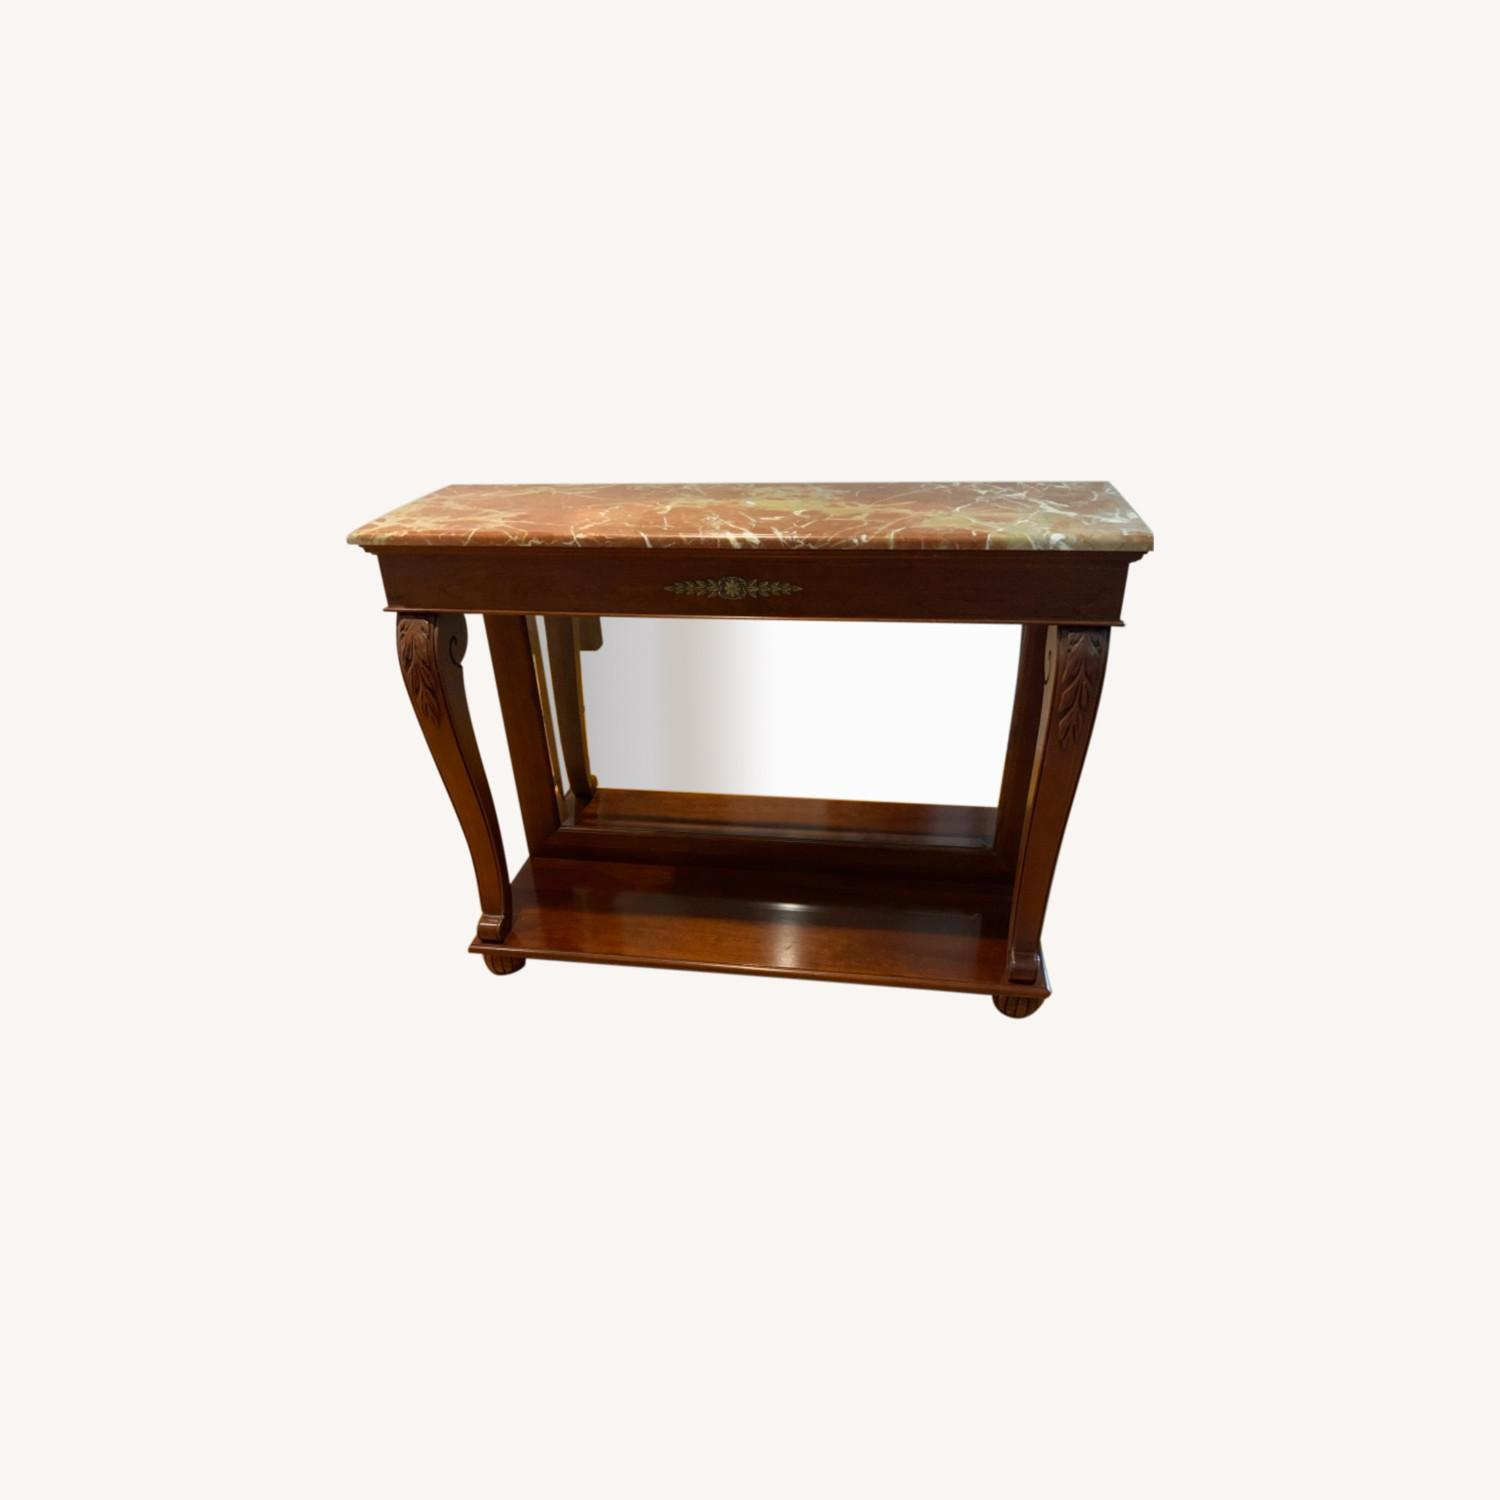 Ethan Allen Marble Console Table - image-0